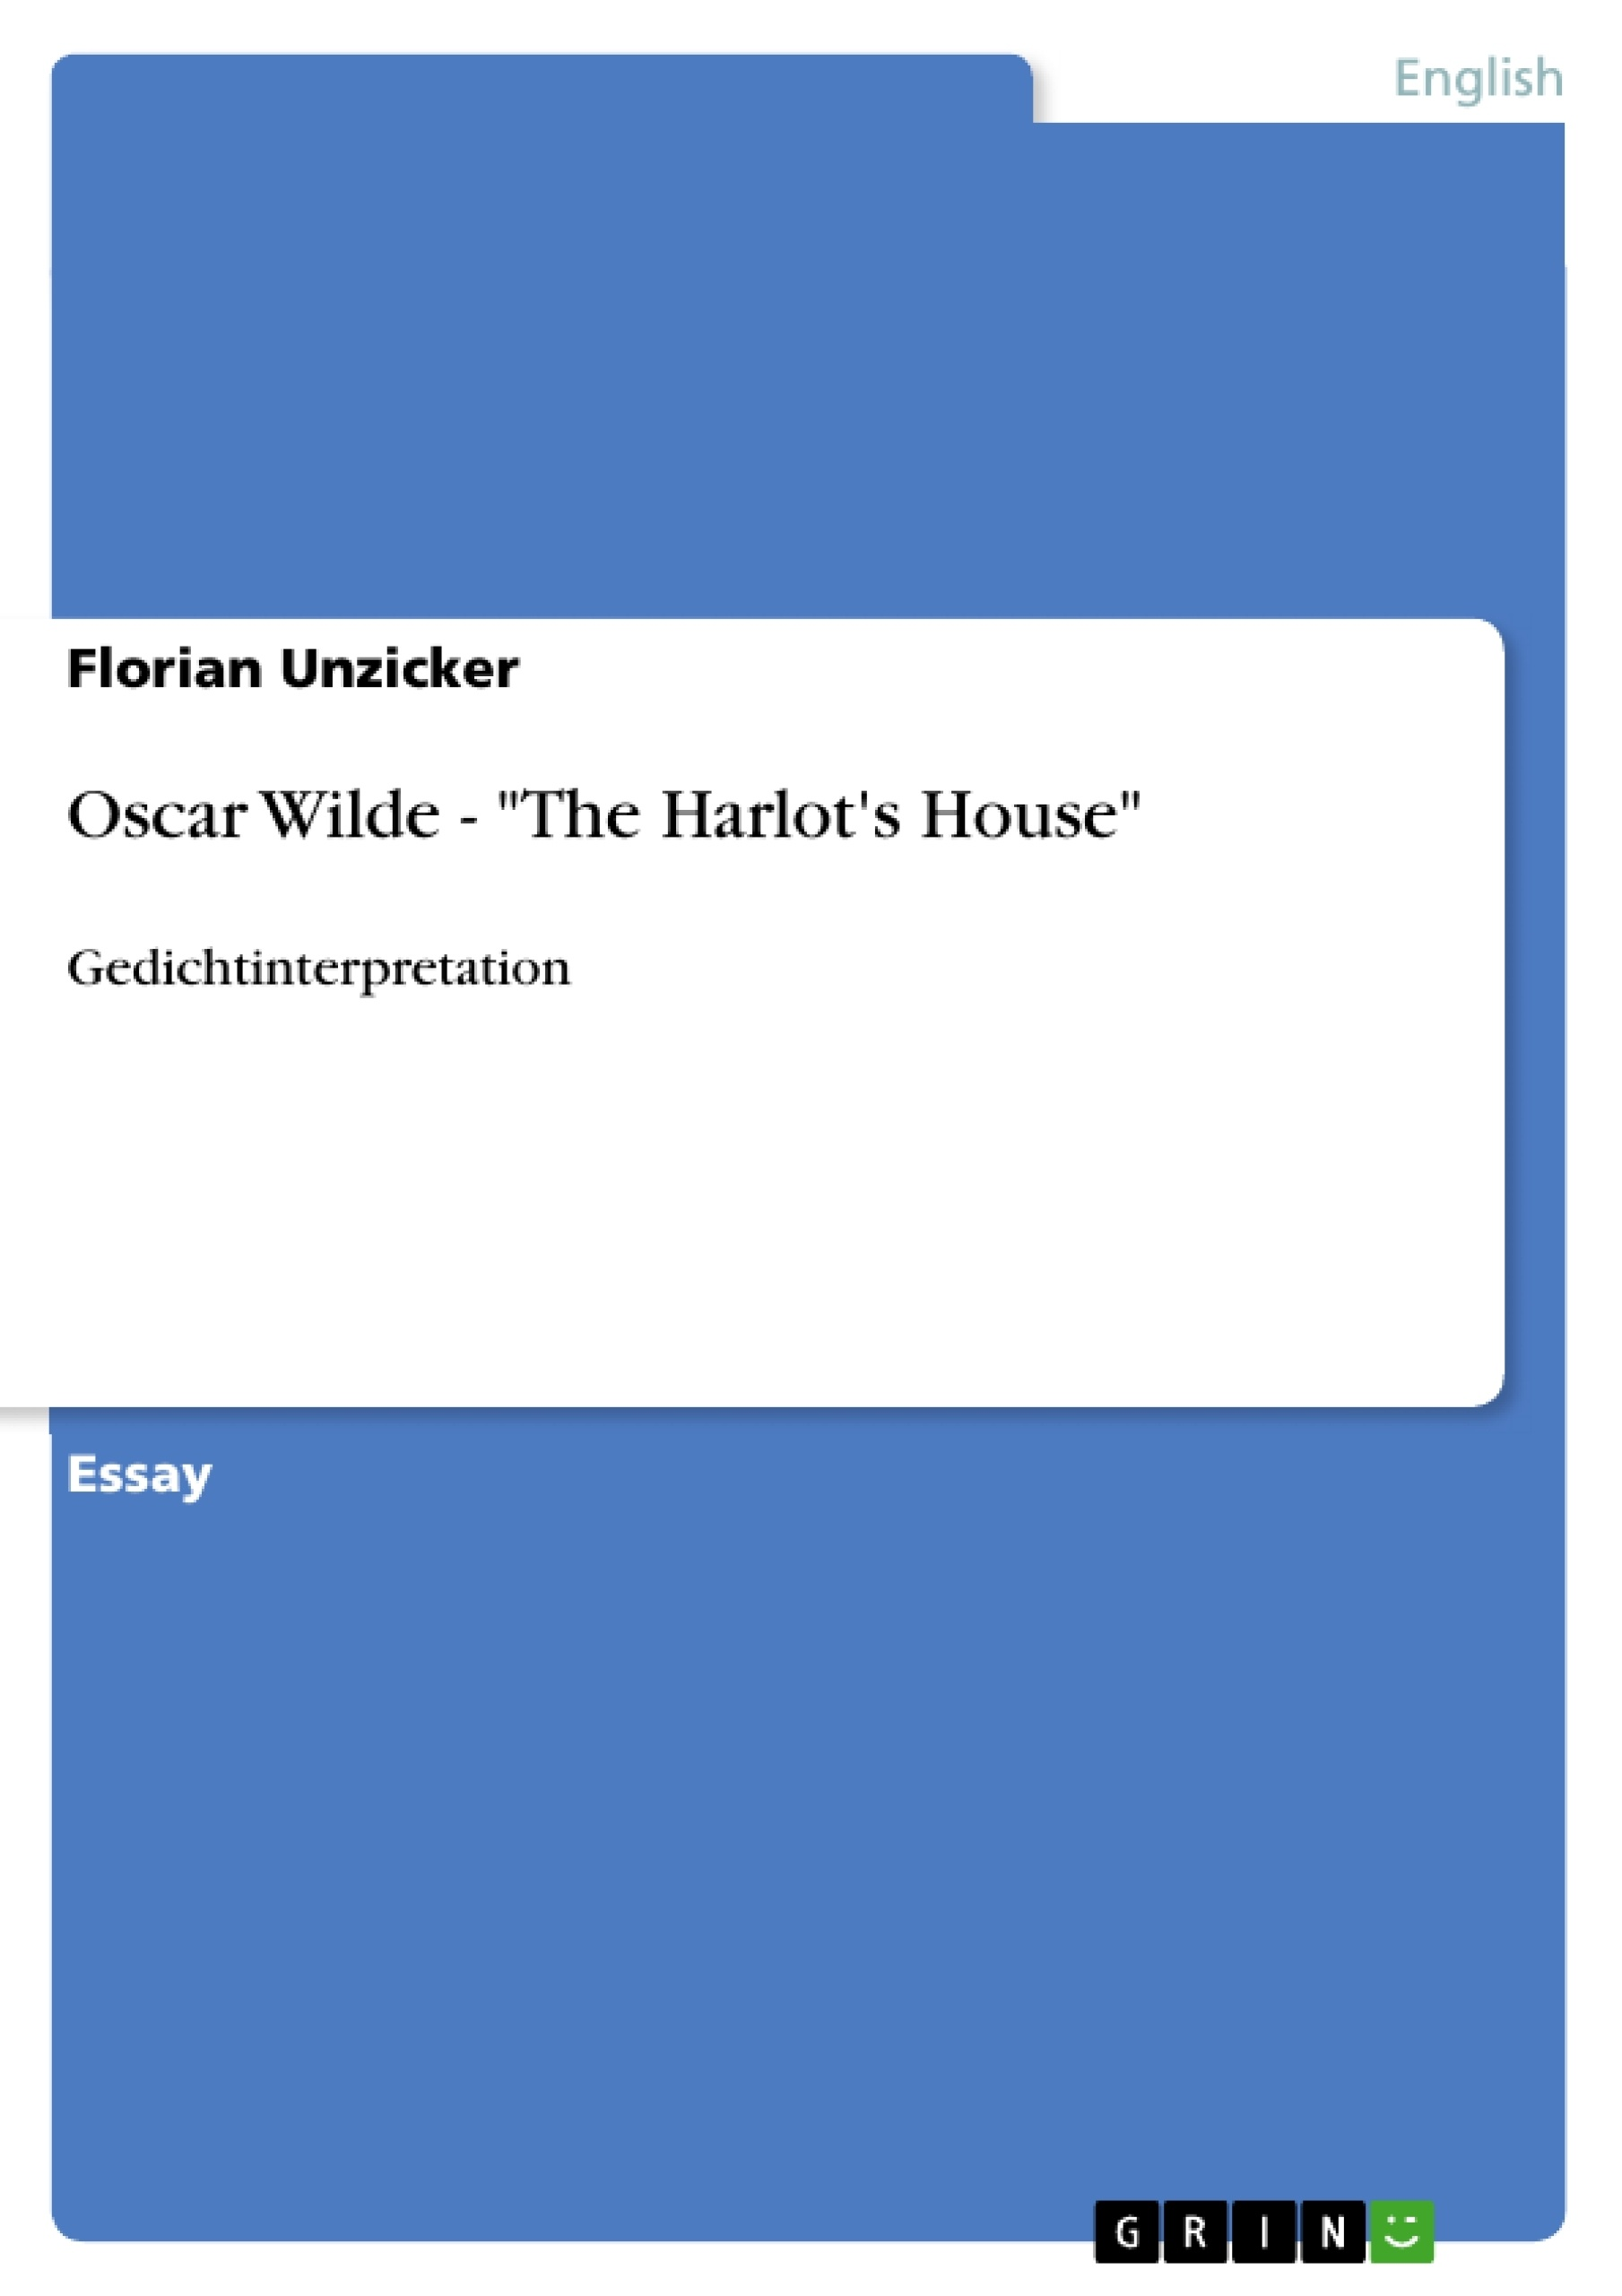 oscar wilde the harlot s house publish your master s thesis oscar wilde the harlot s house publish your master s thesis bachelor s thesis essay or term paper